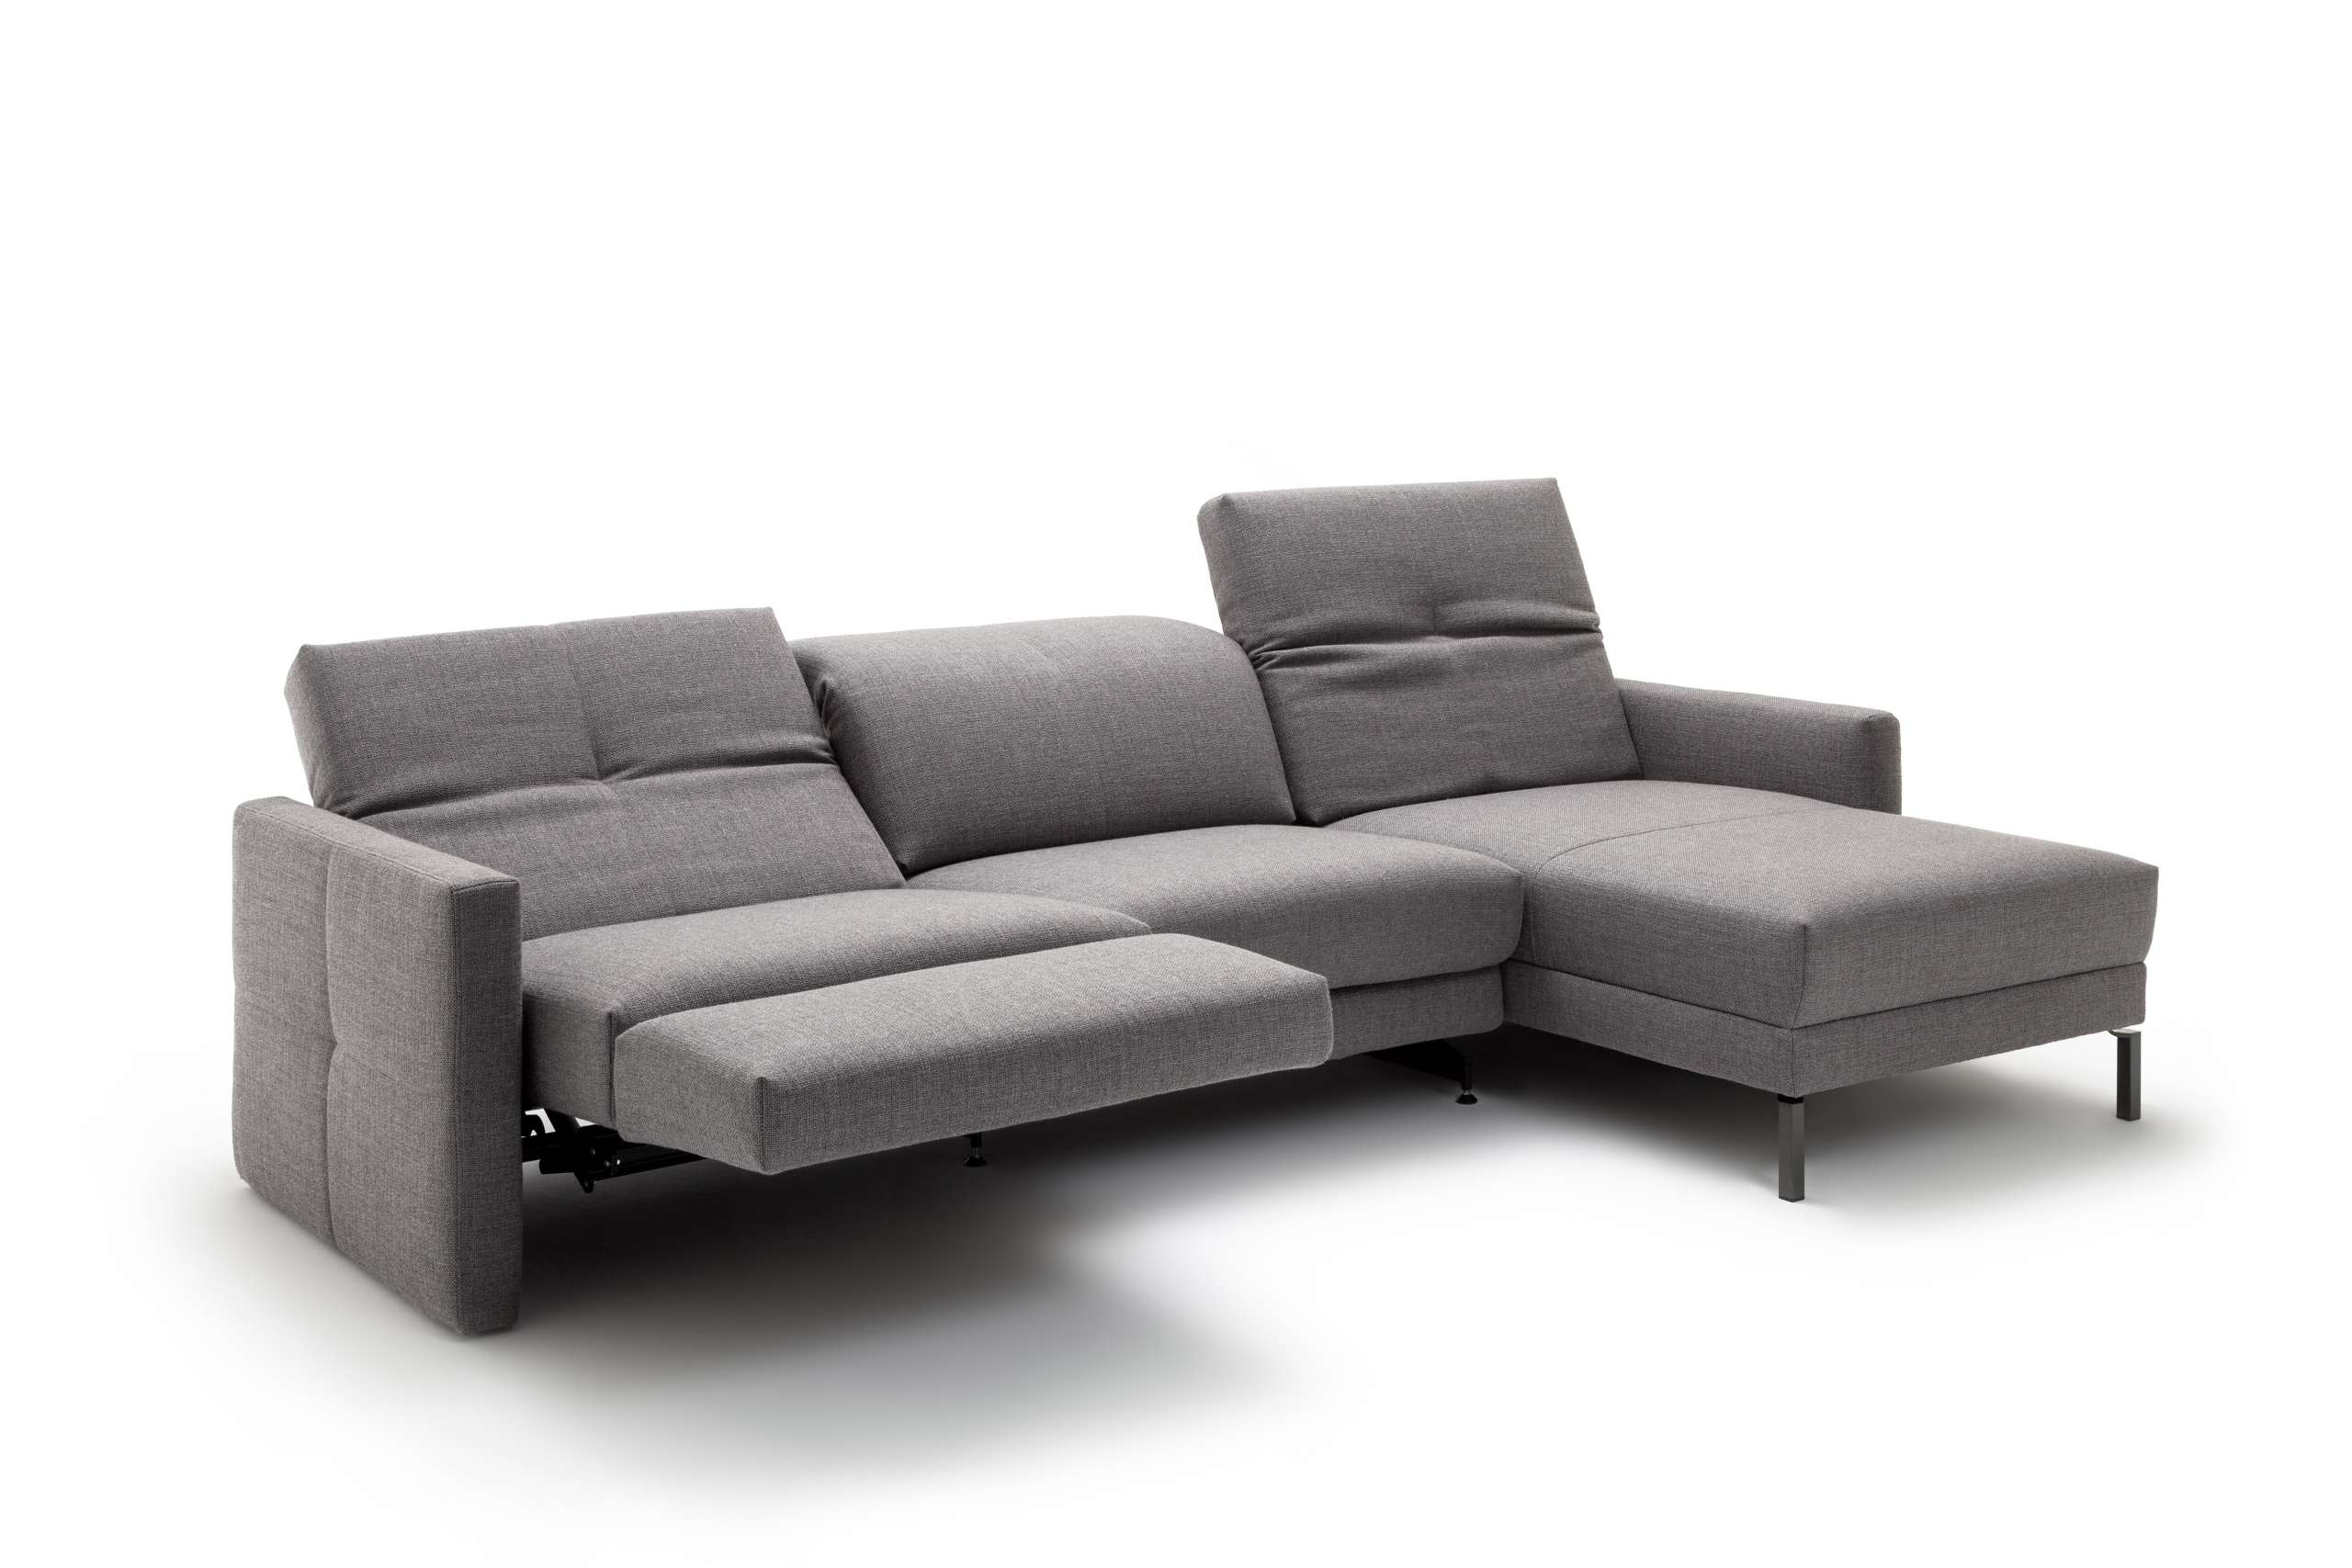 Kleines sofa 2 sitzer for Couch 3 sitzer mit relaxfunktion